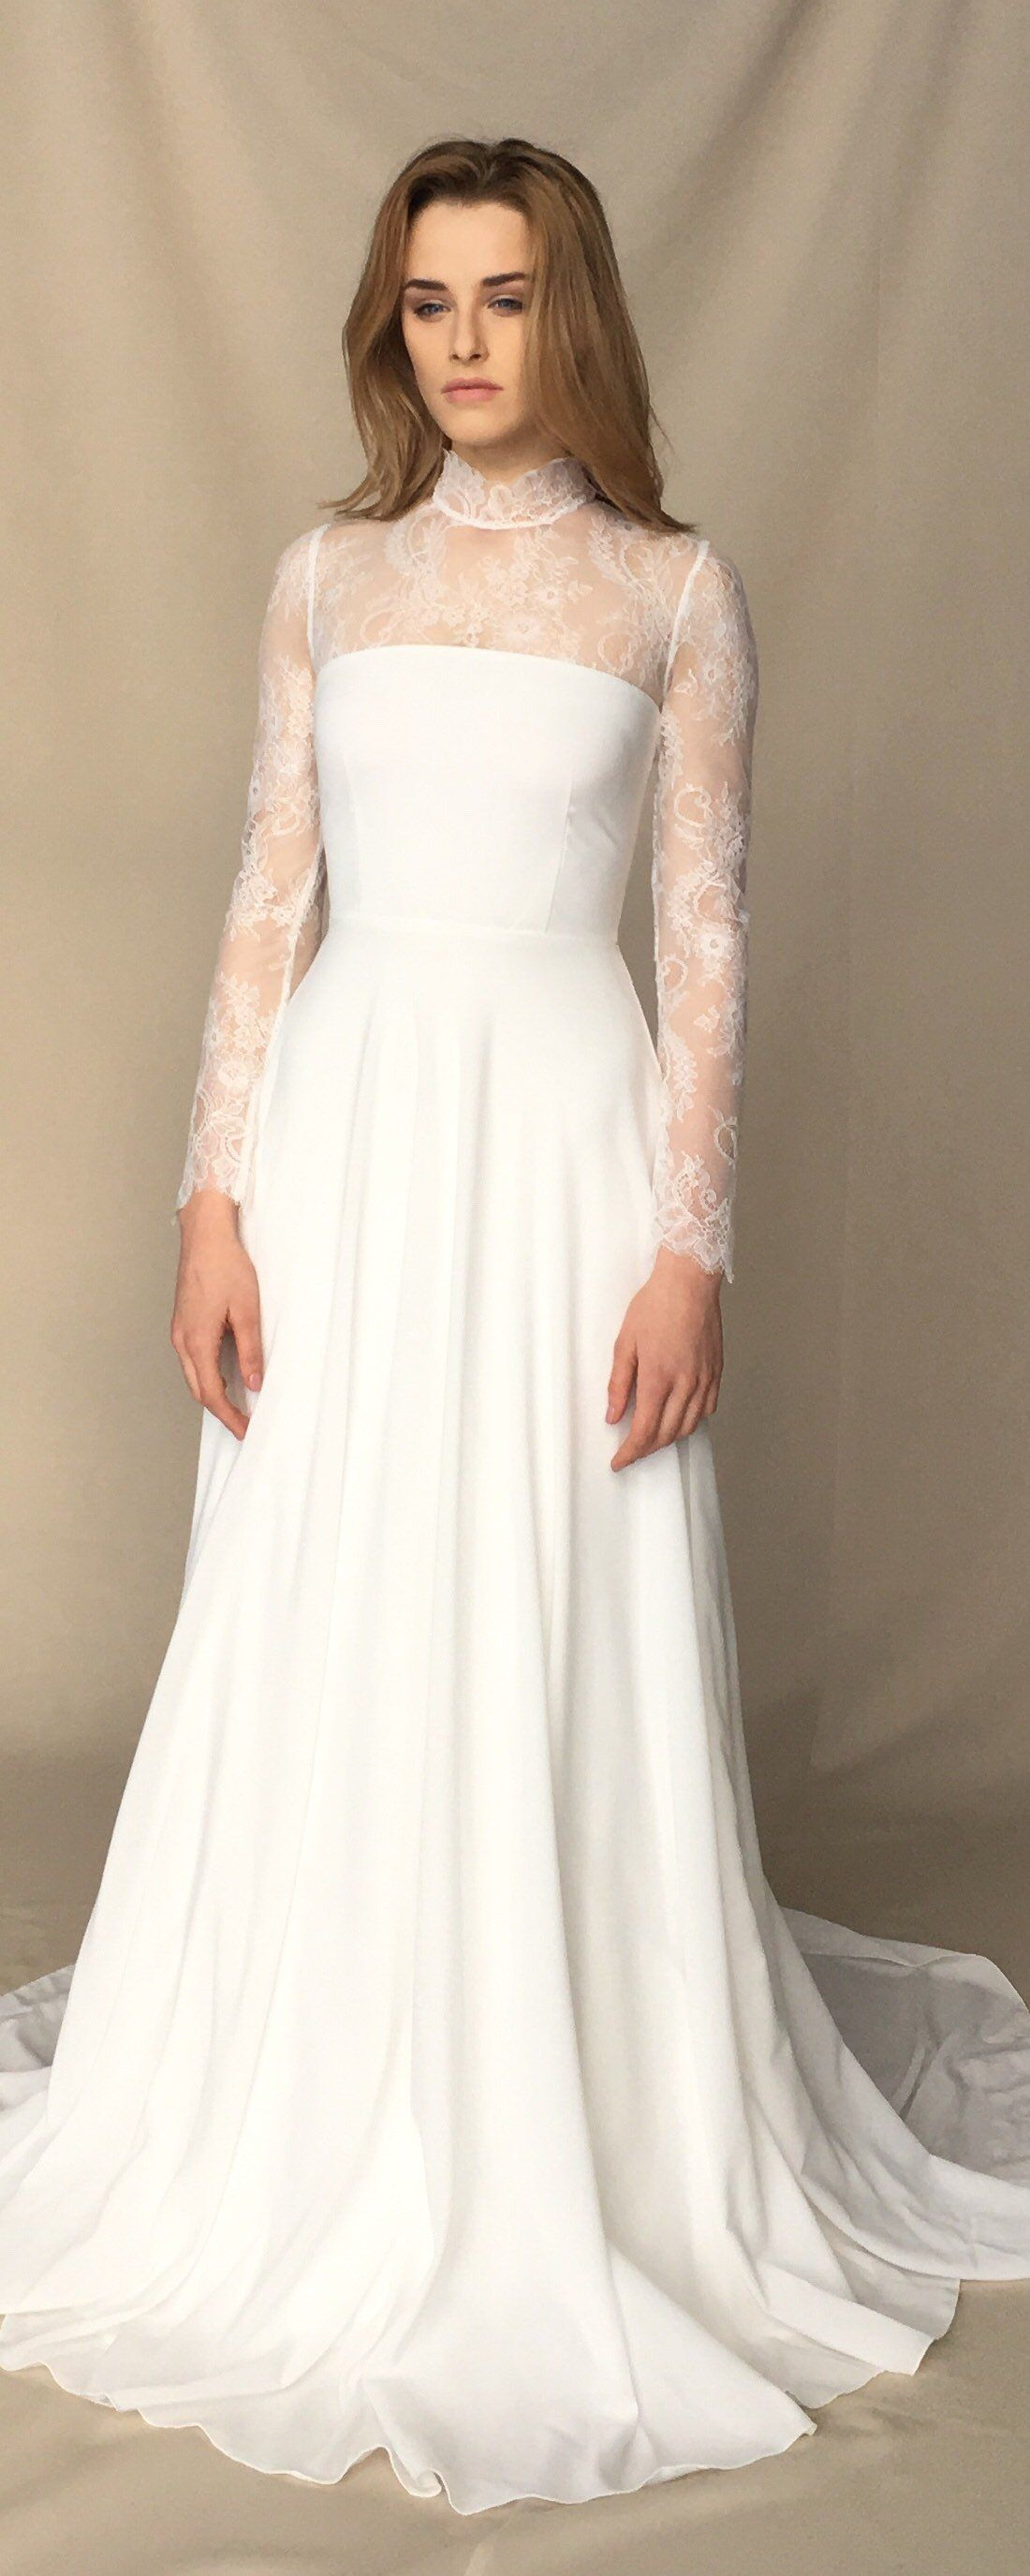 Lace wedding dress high neck light ivory wedding gown offwhite